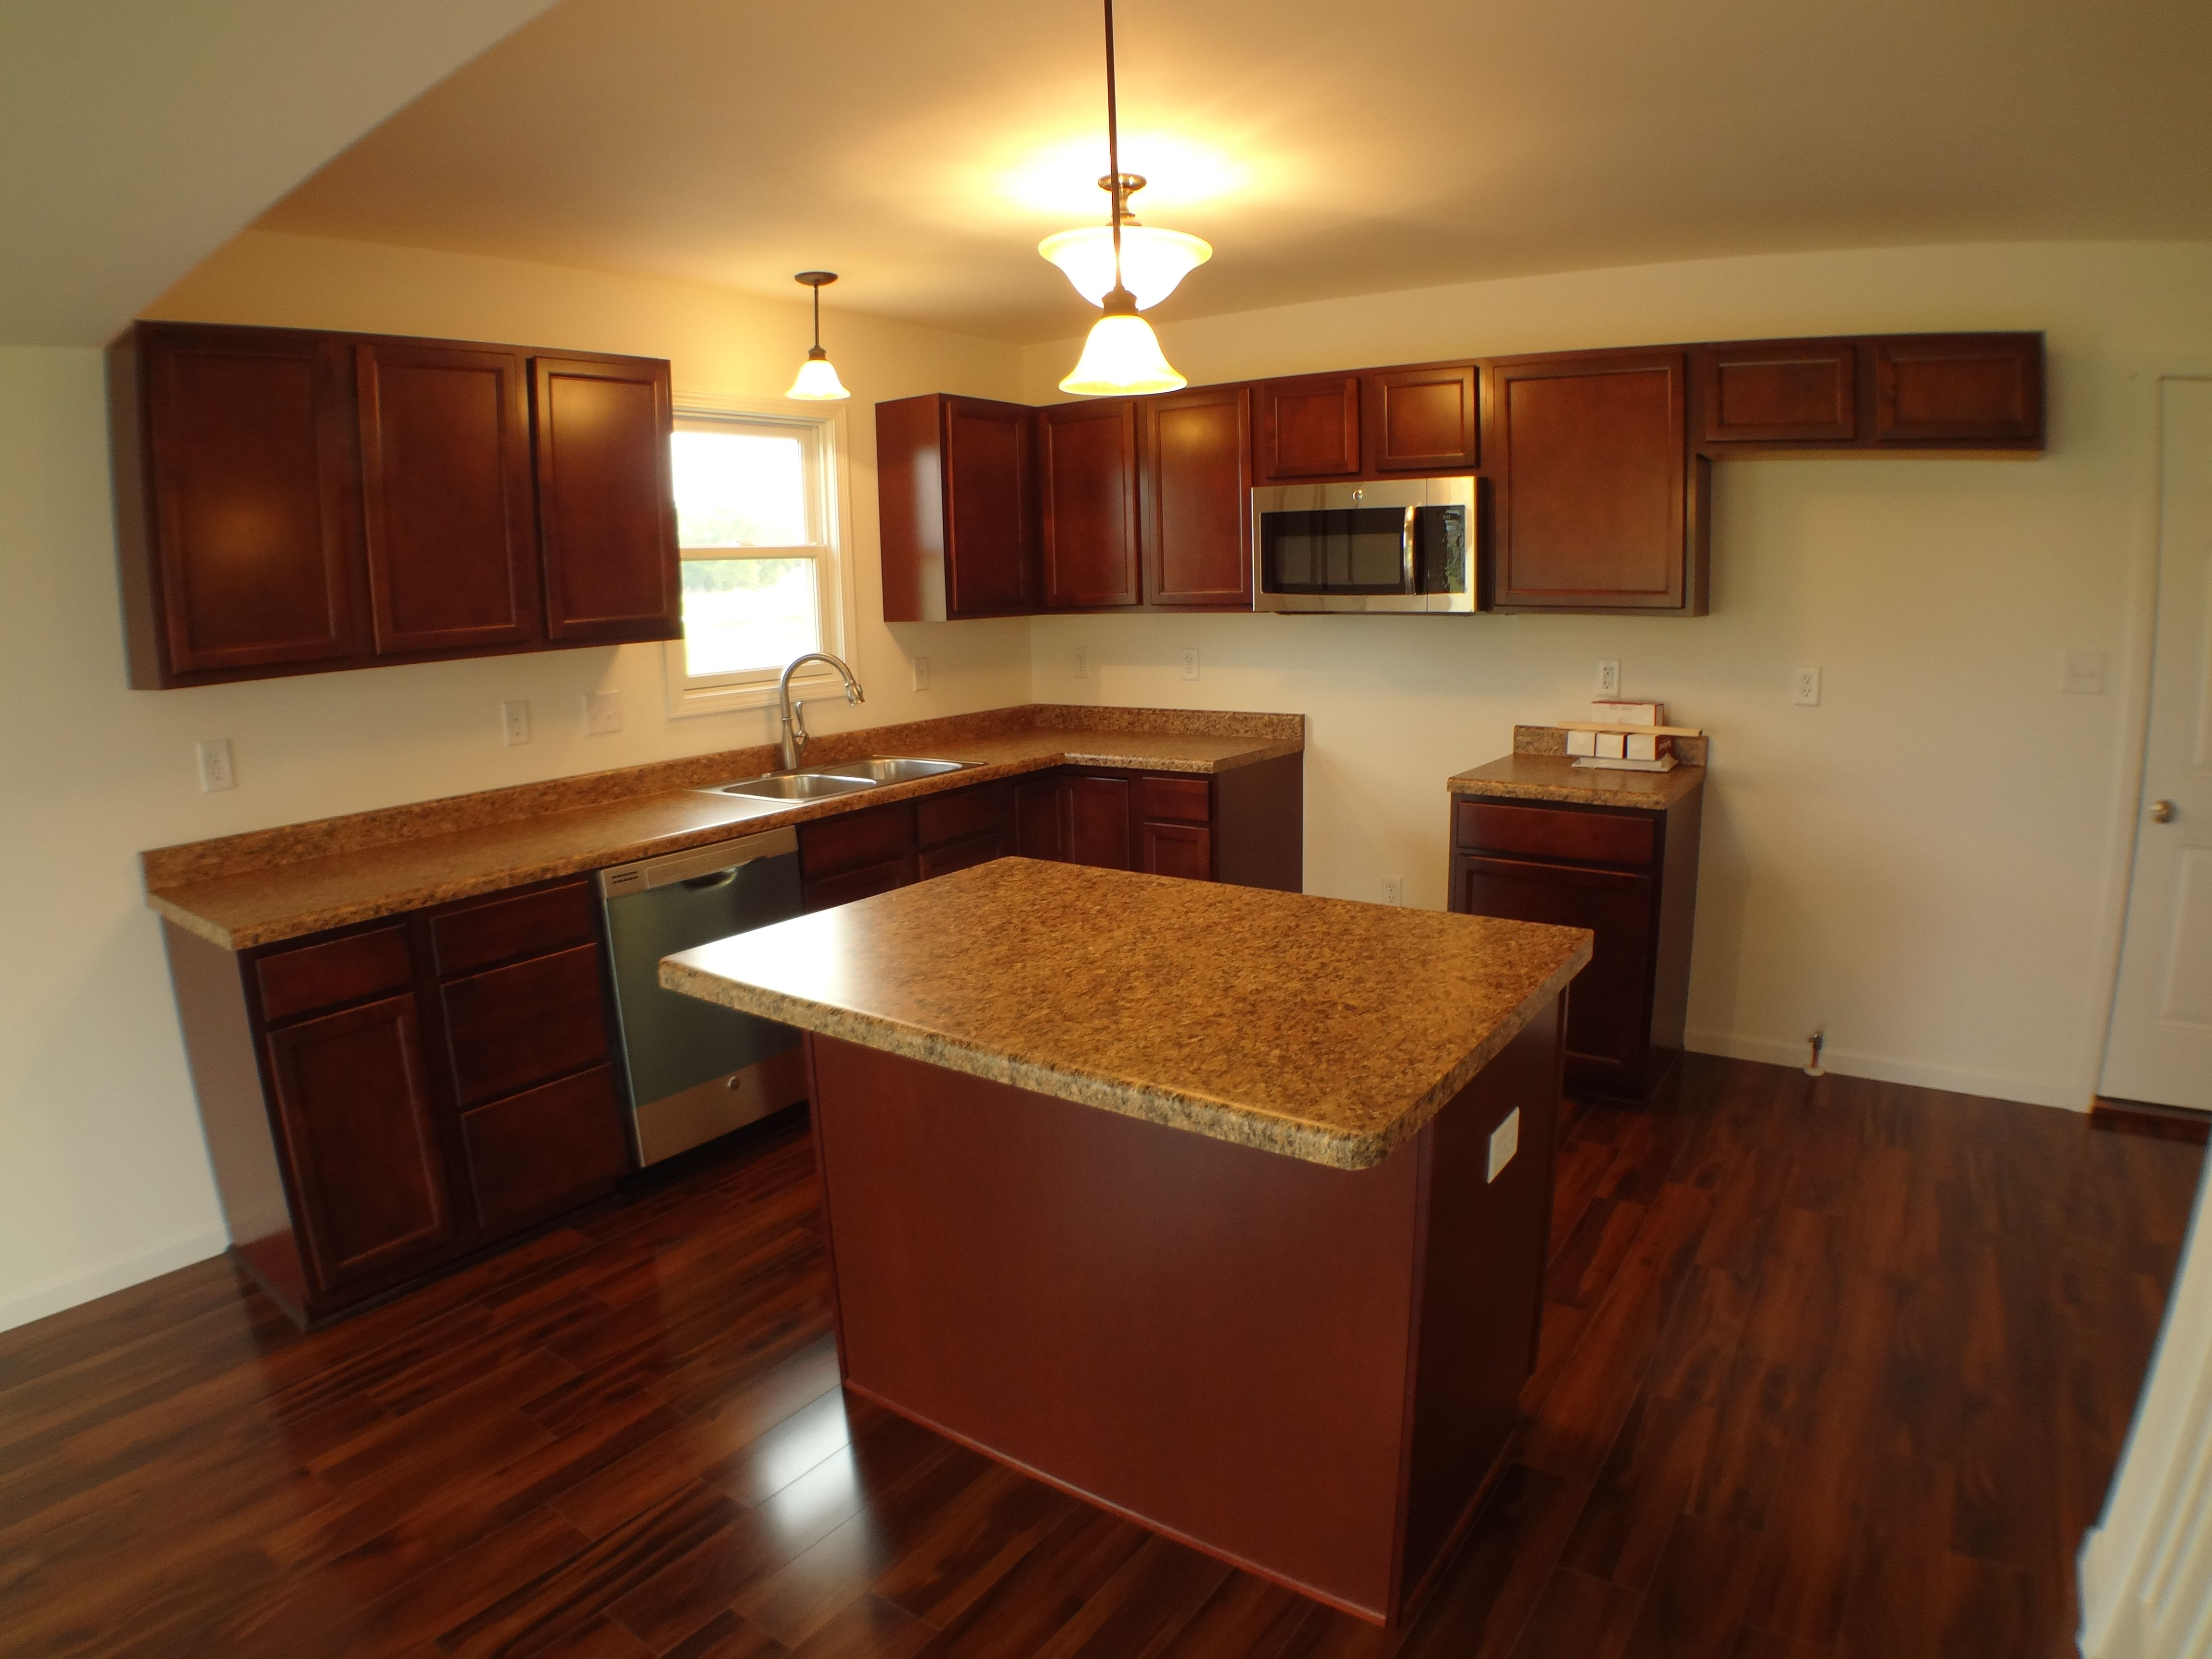 Kitchen featured in the Auburn II By Accent Homes Inc. in Gary, IN